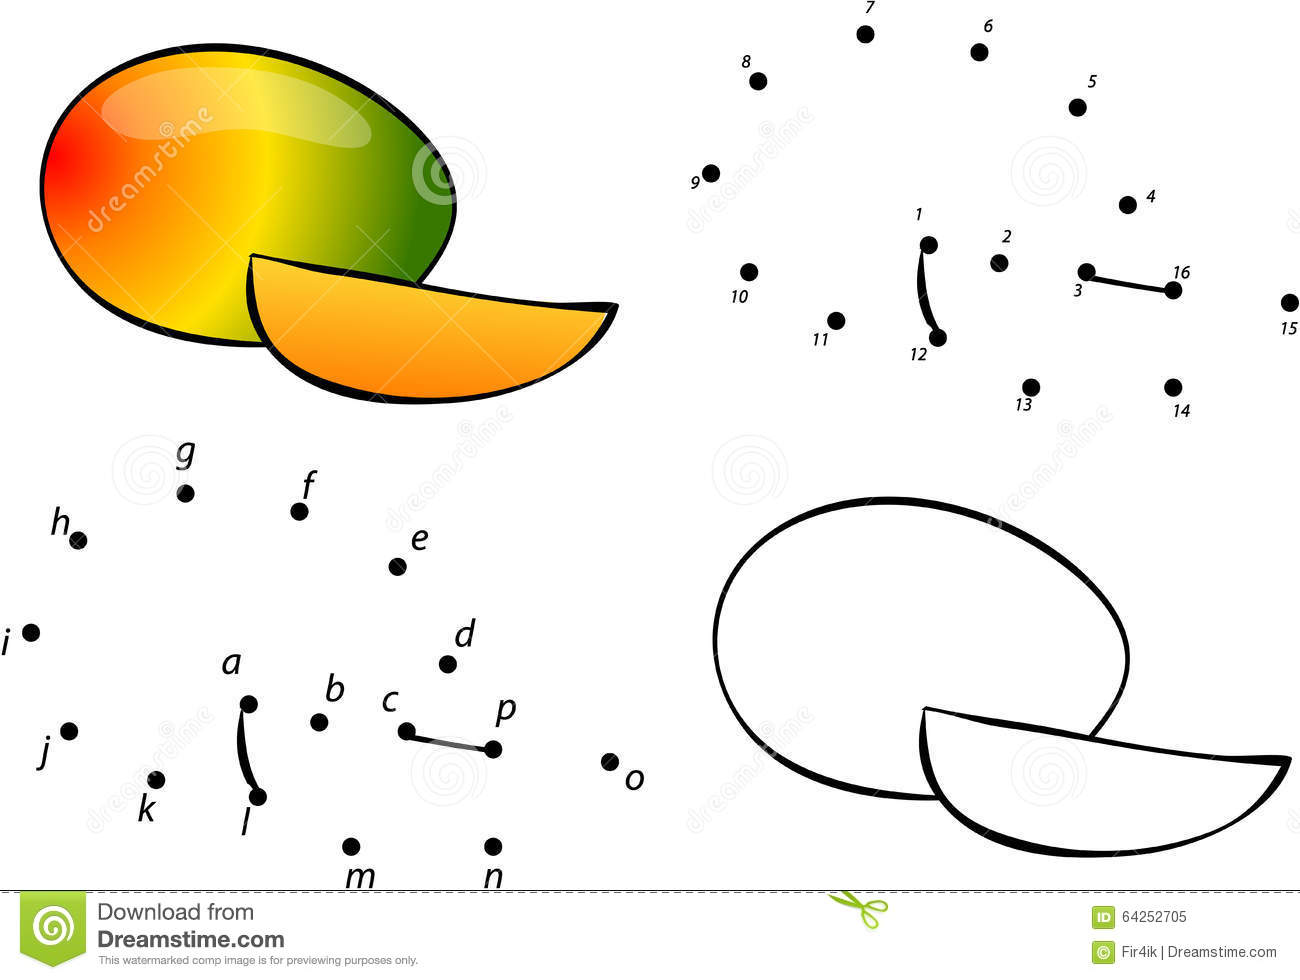 cartoon mango vector illustration coloring and dot to dot game